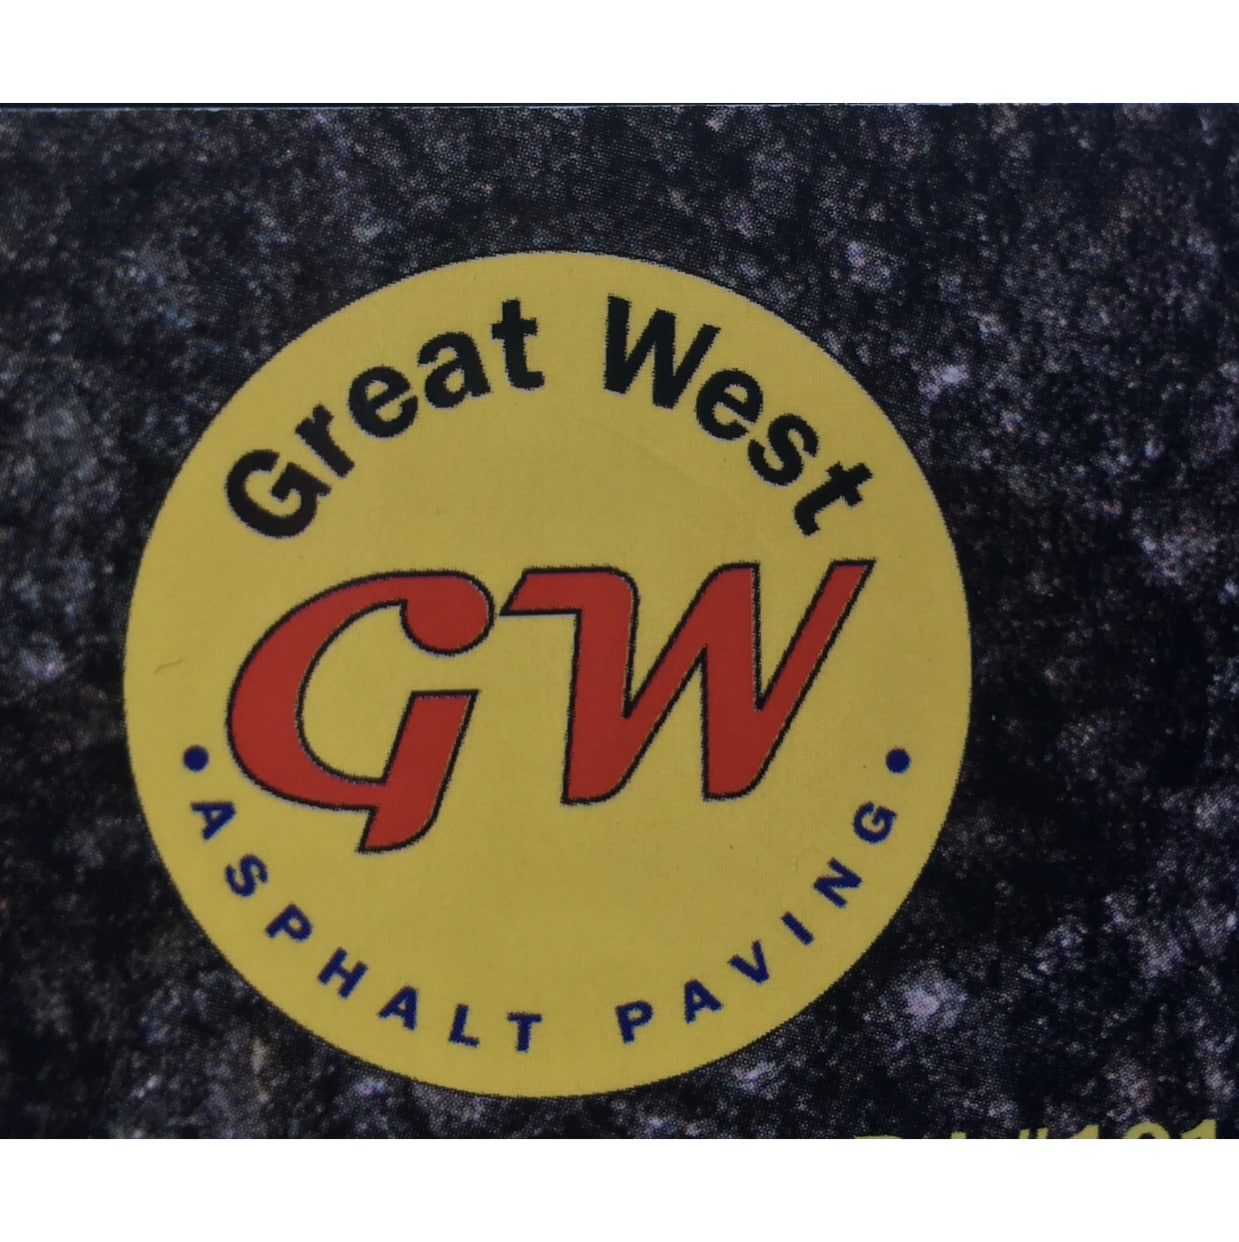 Great West Asphalt